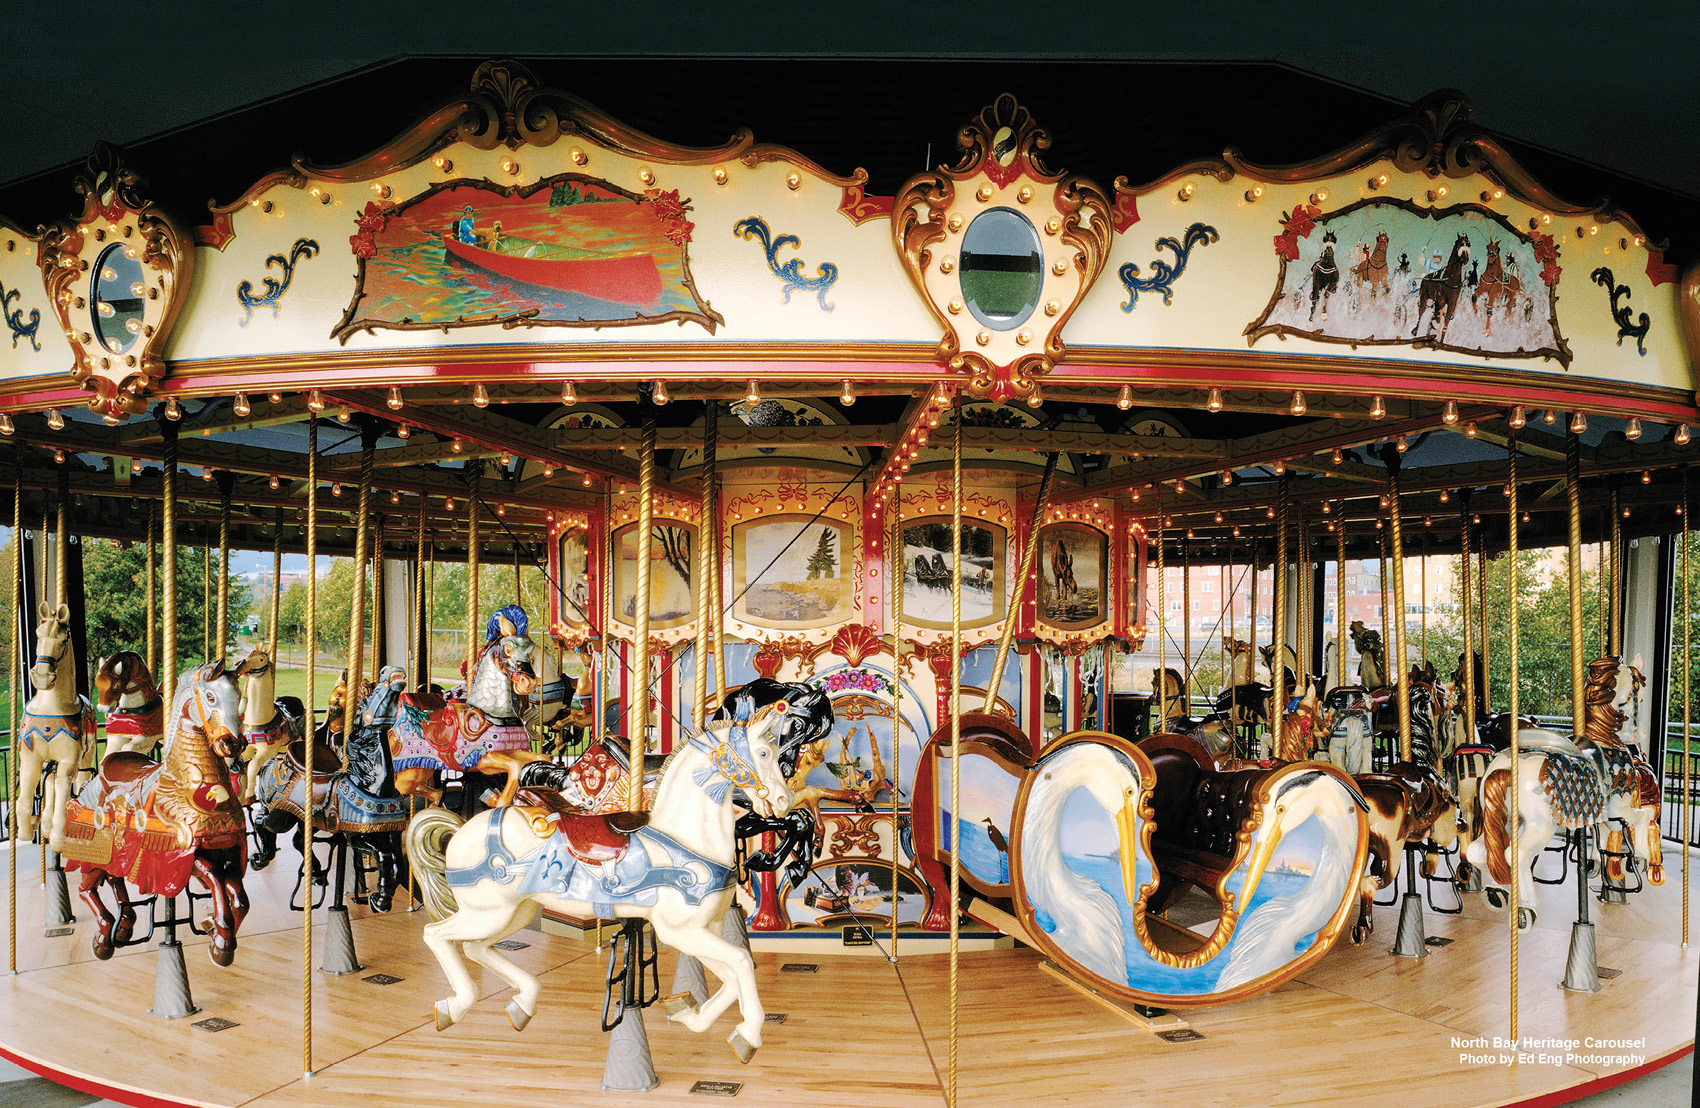 North-Bay-Heritage-Carousel-Canada-CNT-center-Mar-07